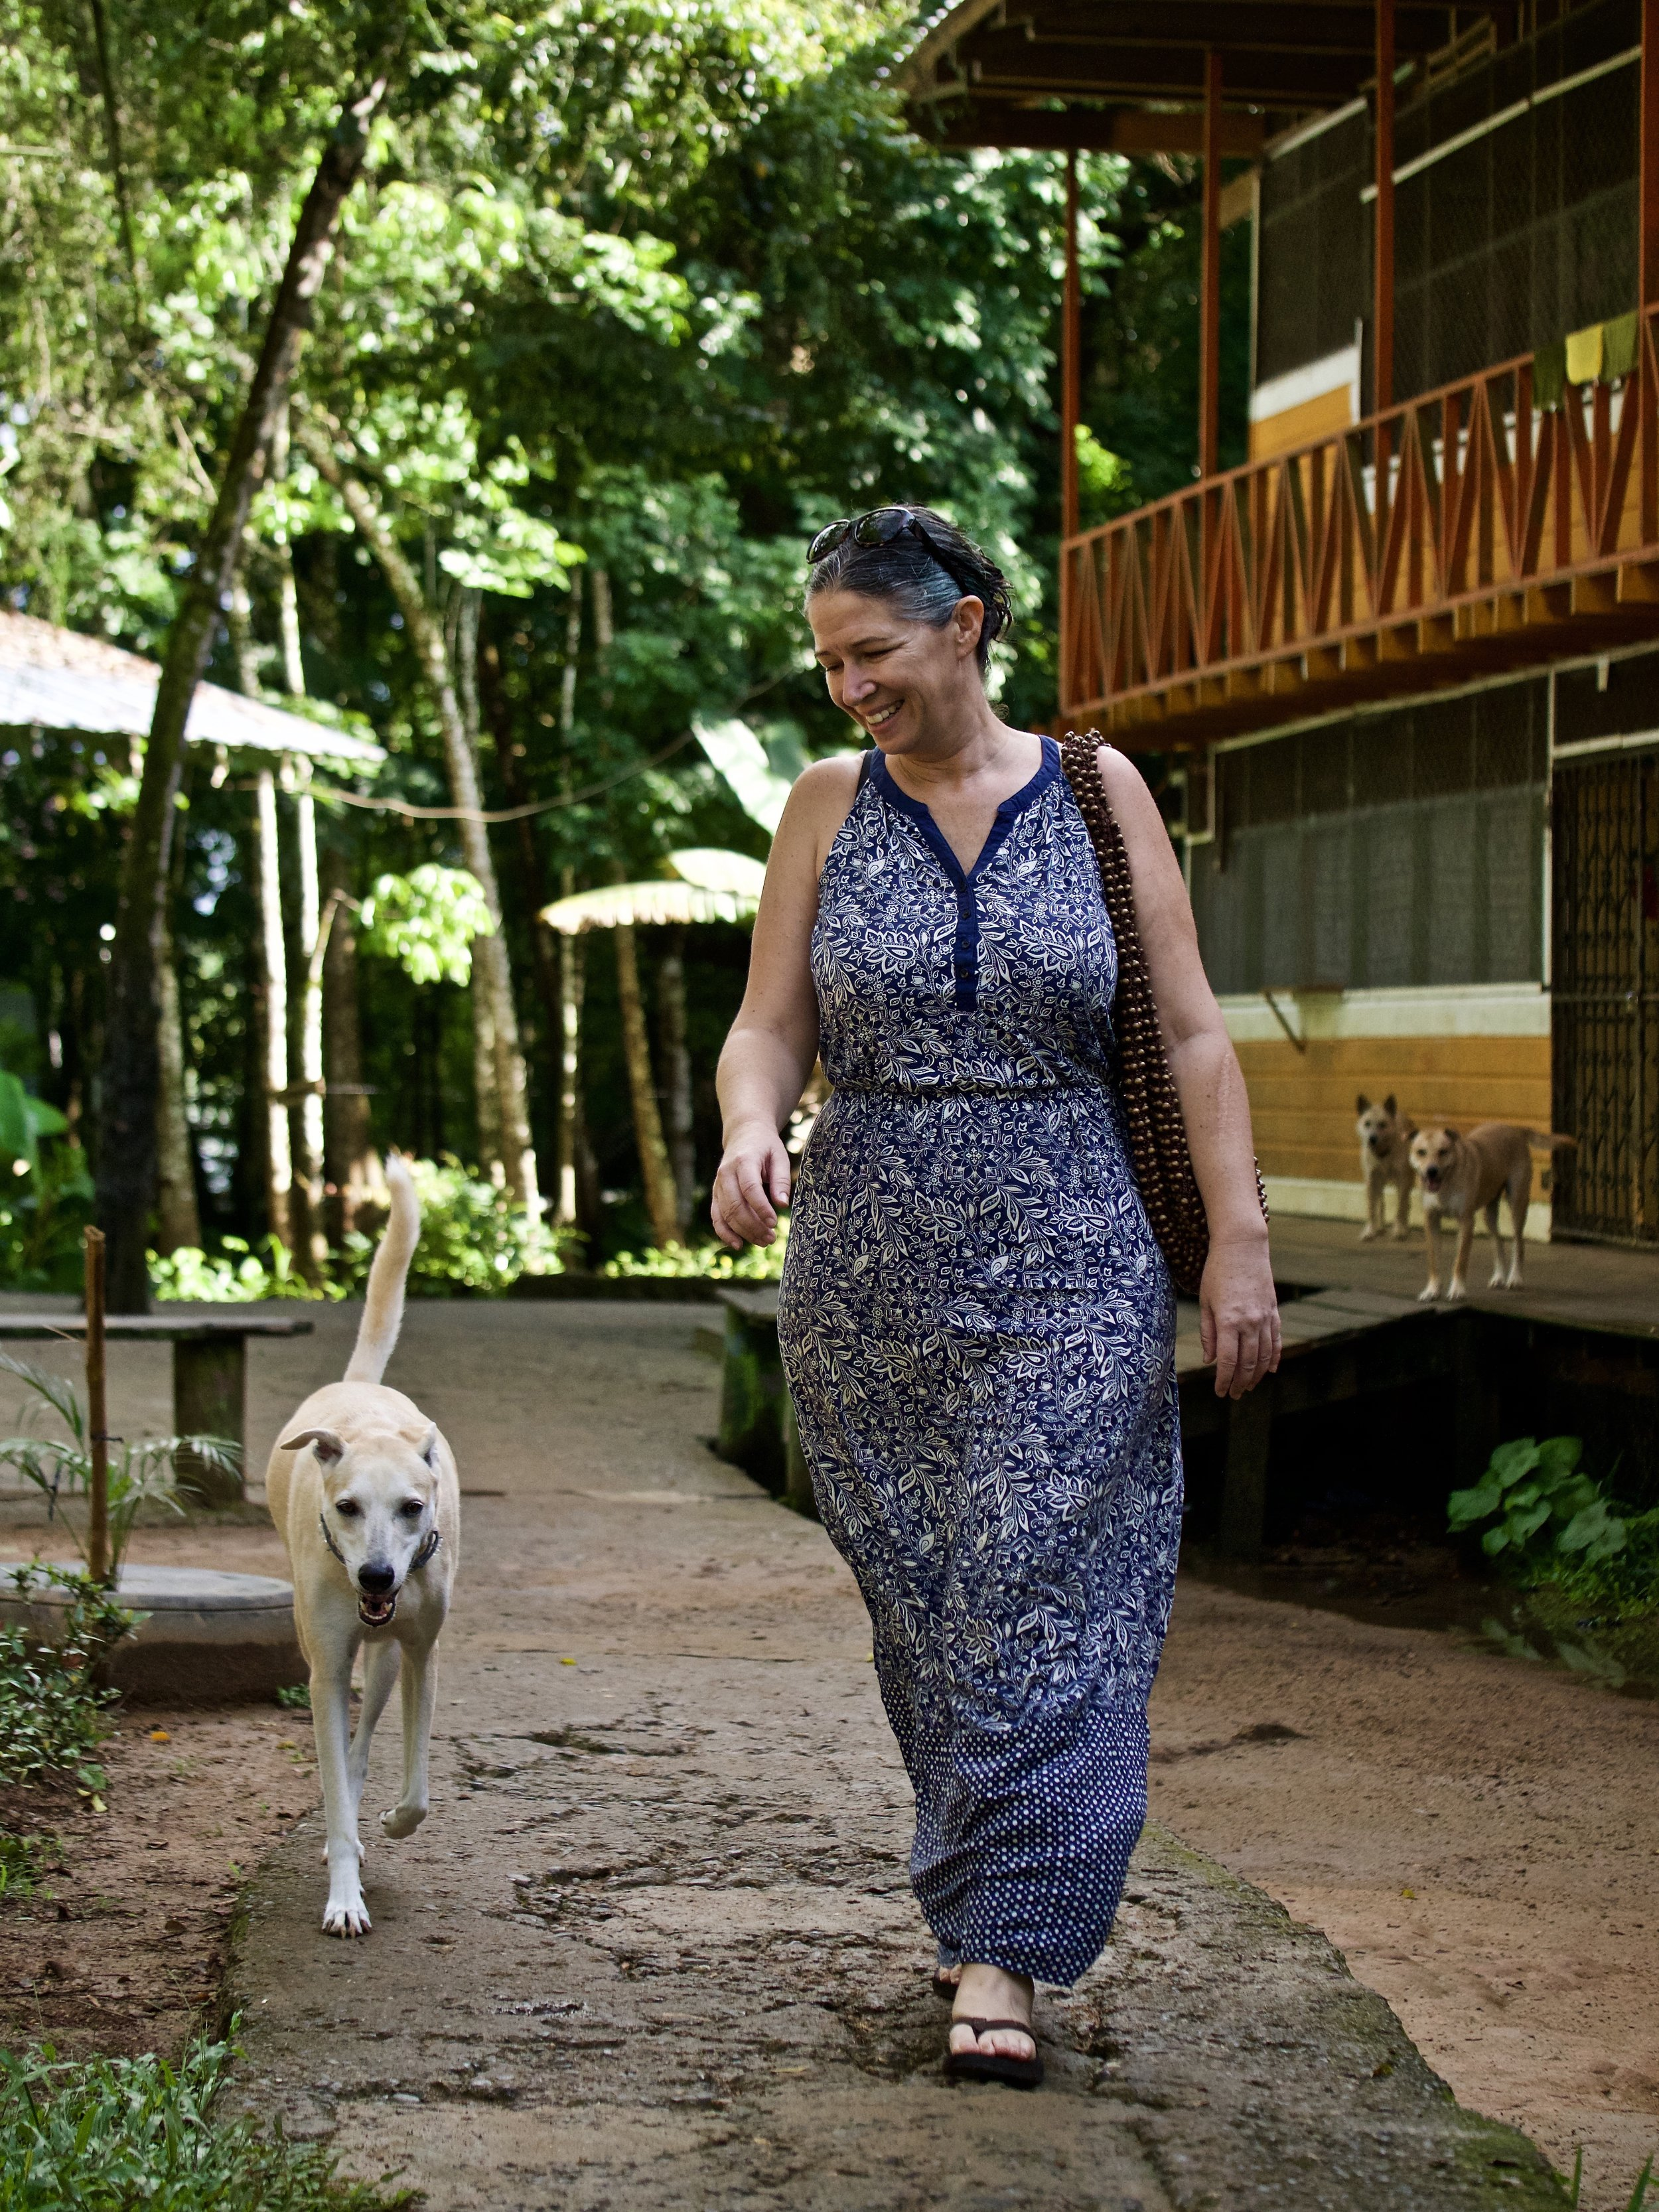 Heather Graham - Execute Director, Casa GuatemalaIn charge of a Children's Home who provides education, accommodation and health services for 300 kids… and a few dogs.